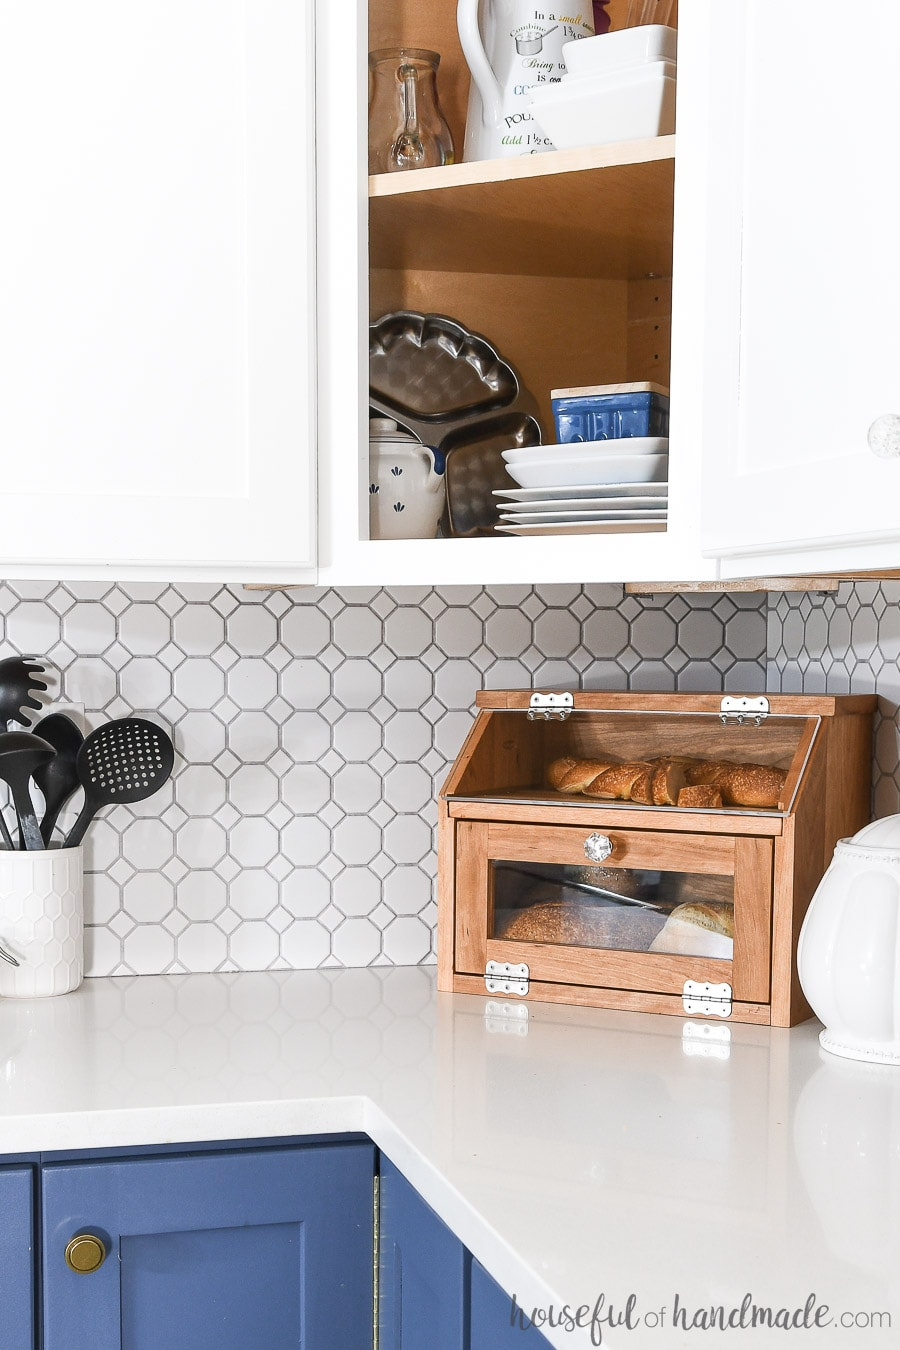 DIY bread box in the corner of a kitchen counter.